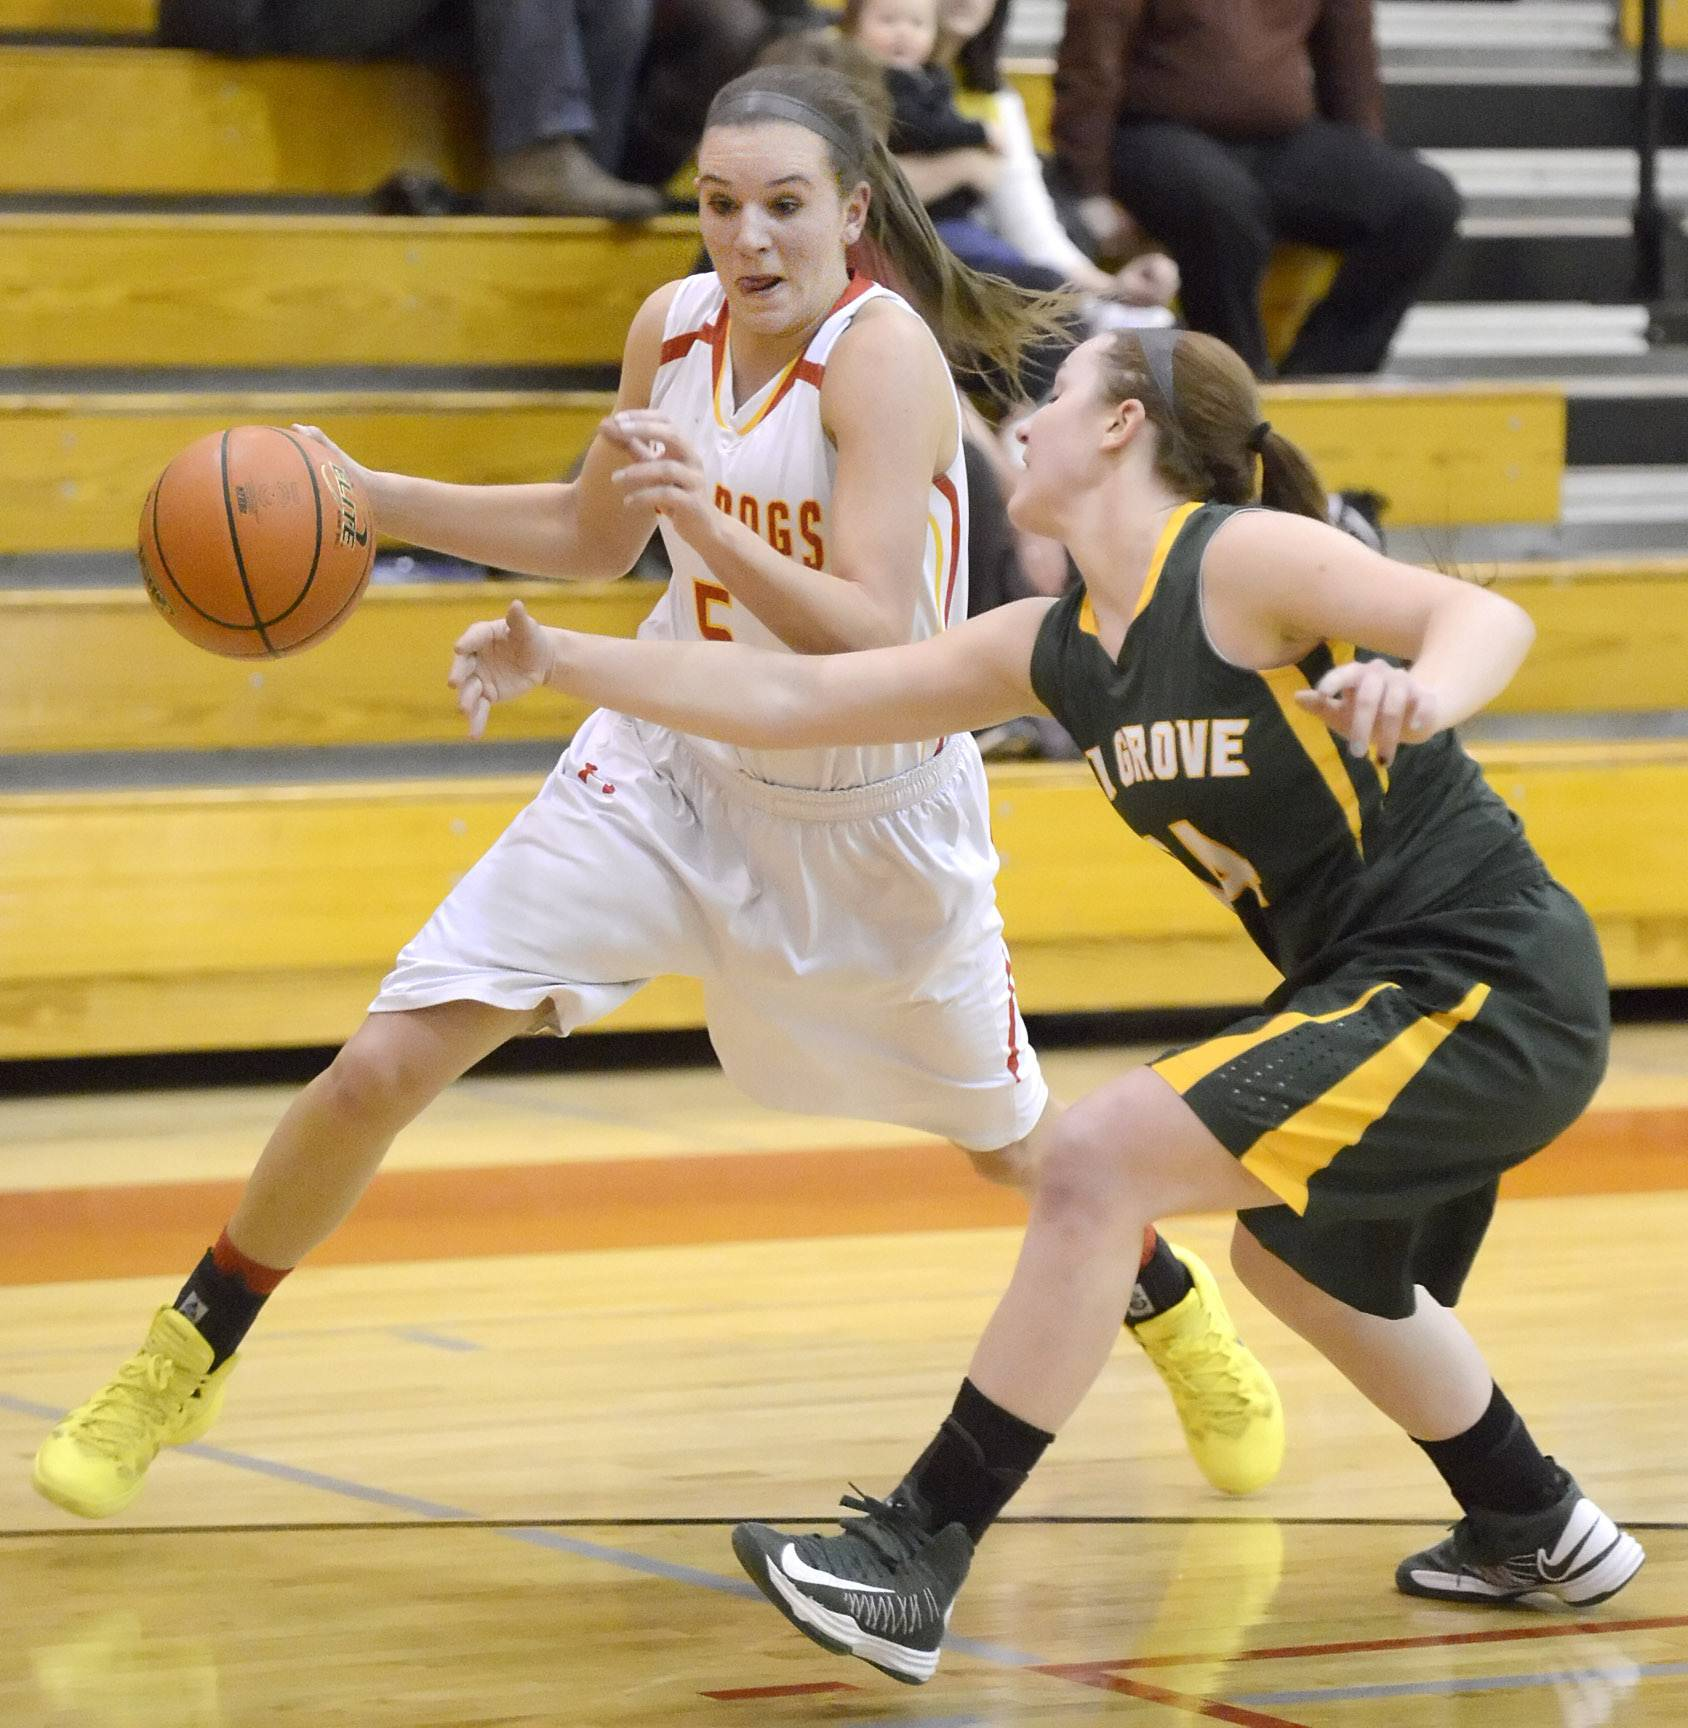 Batavia's Liza Fruendt dribbles around Elk Grove's Taylor Brown in the first quarter on Tuesday, February 18.